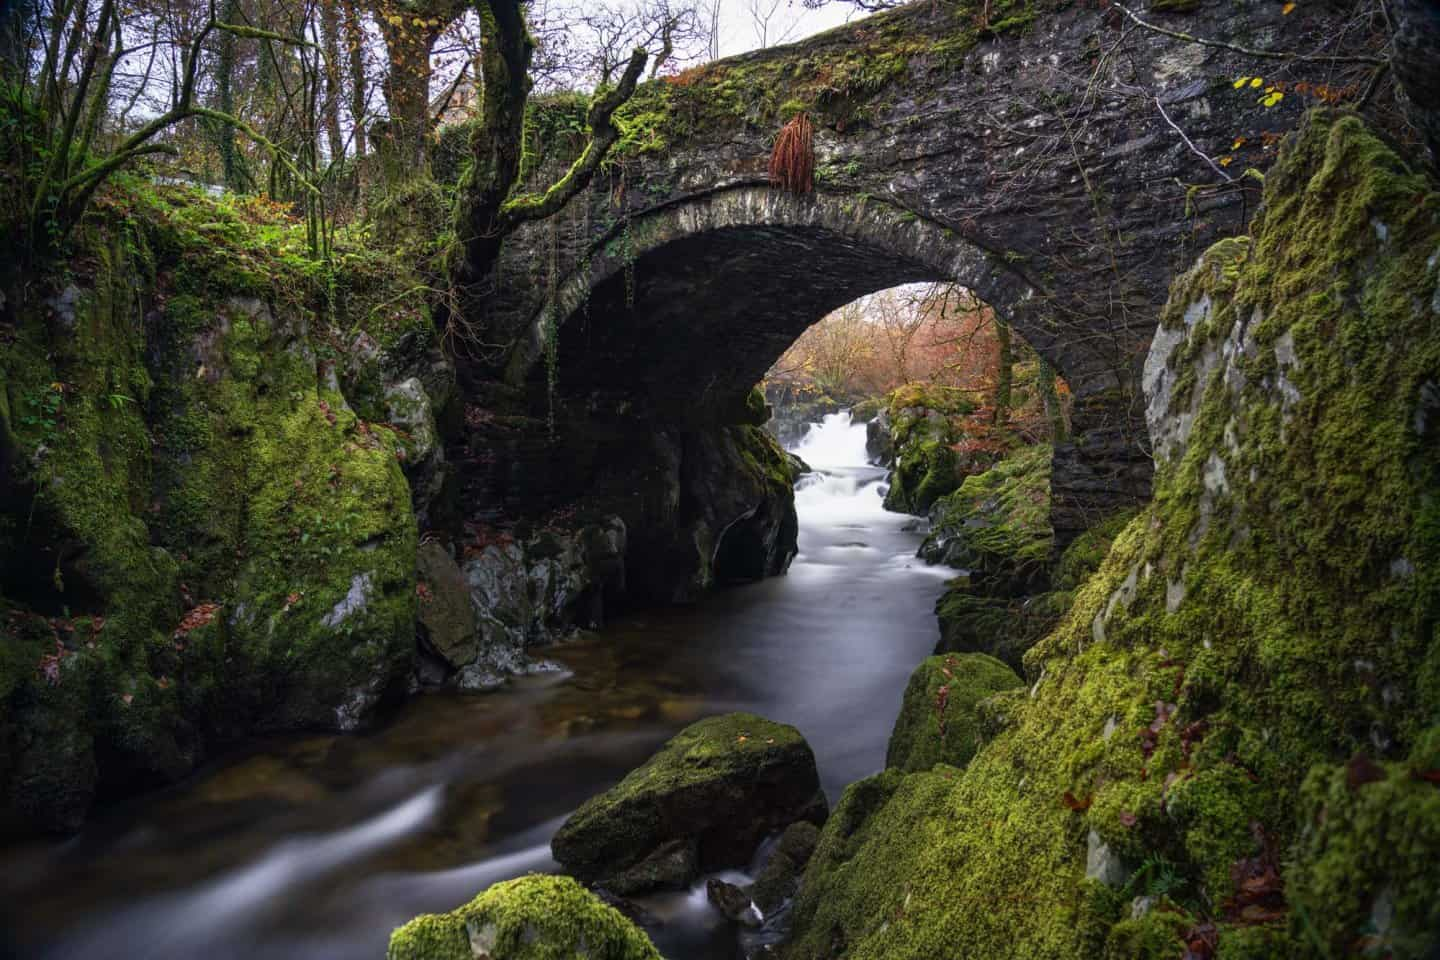 Another beautiful bridge for landscape photography  in Snowdonia National Park.